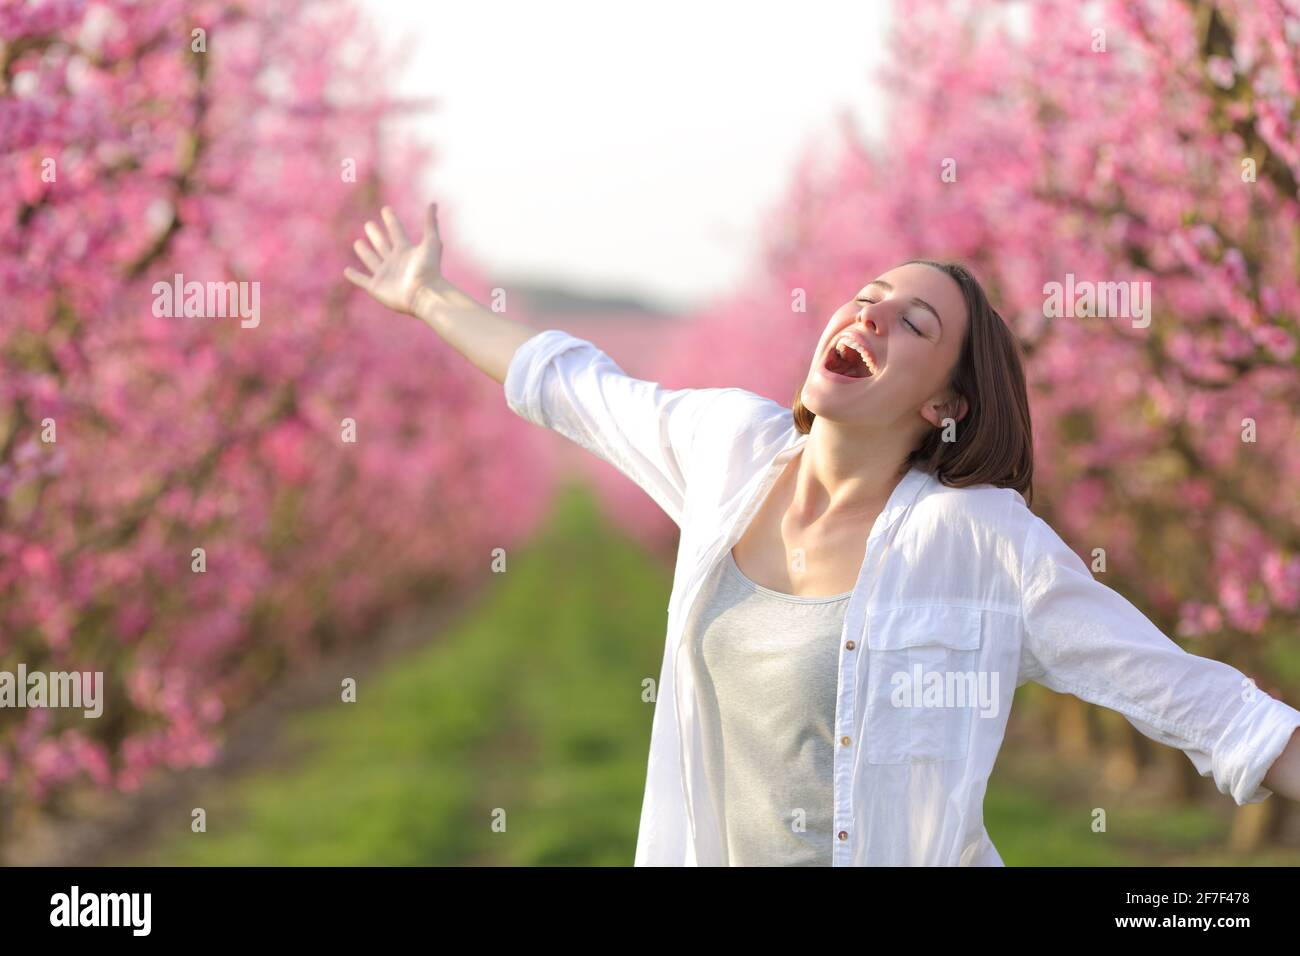 Excited woman stretching arms celebrating spring and vacation in a pink flowered field Stock Photo